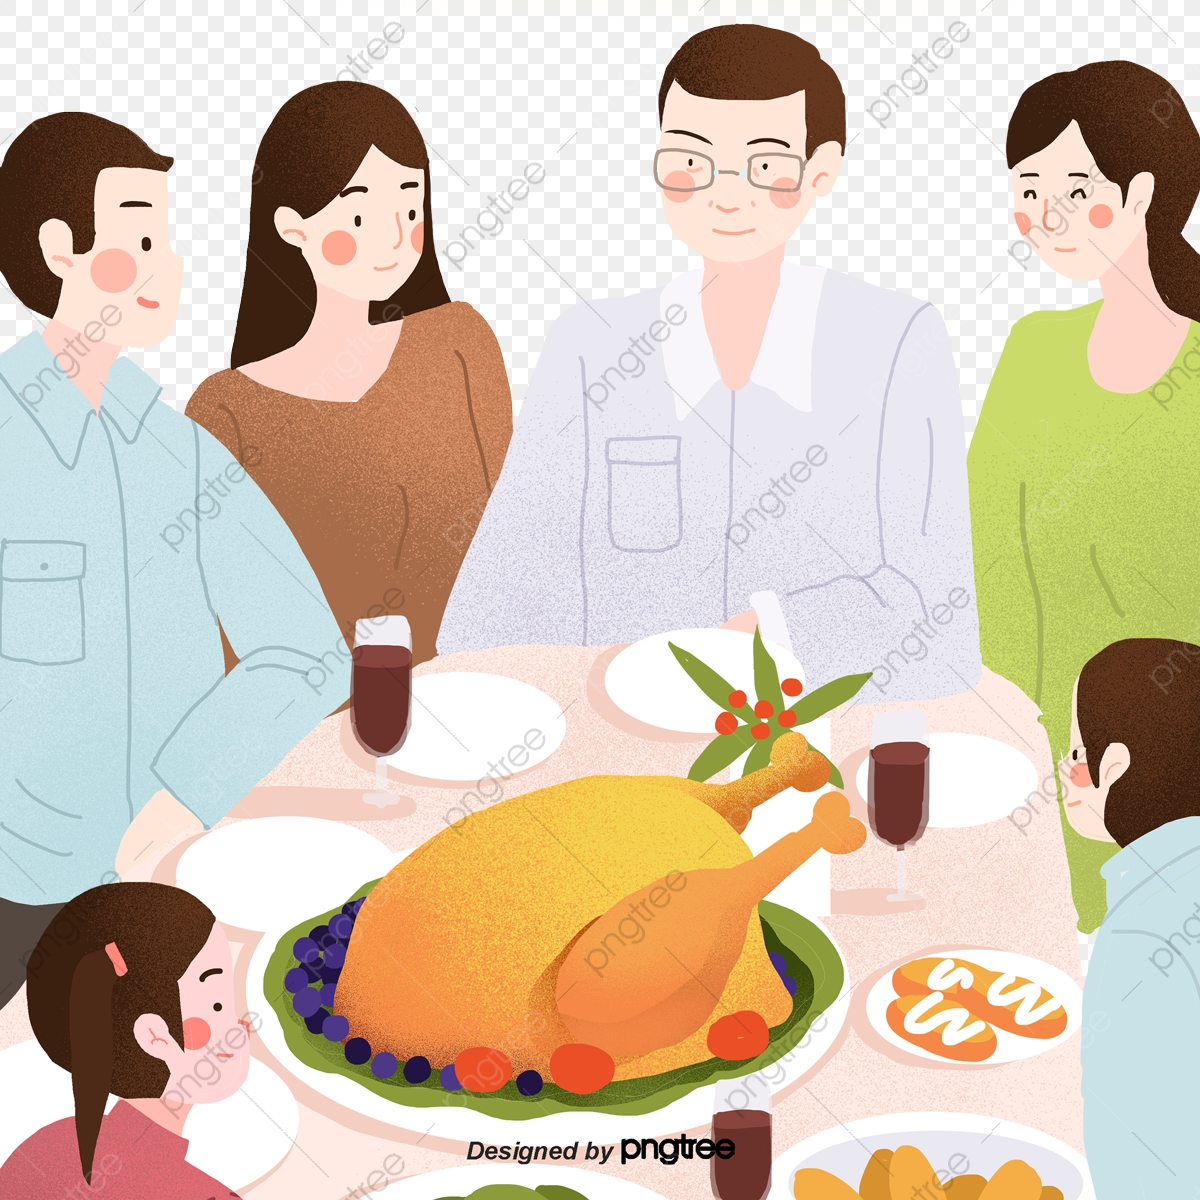 Dinner clipart big meal. Six members of a